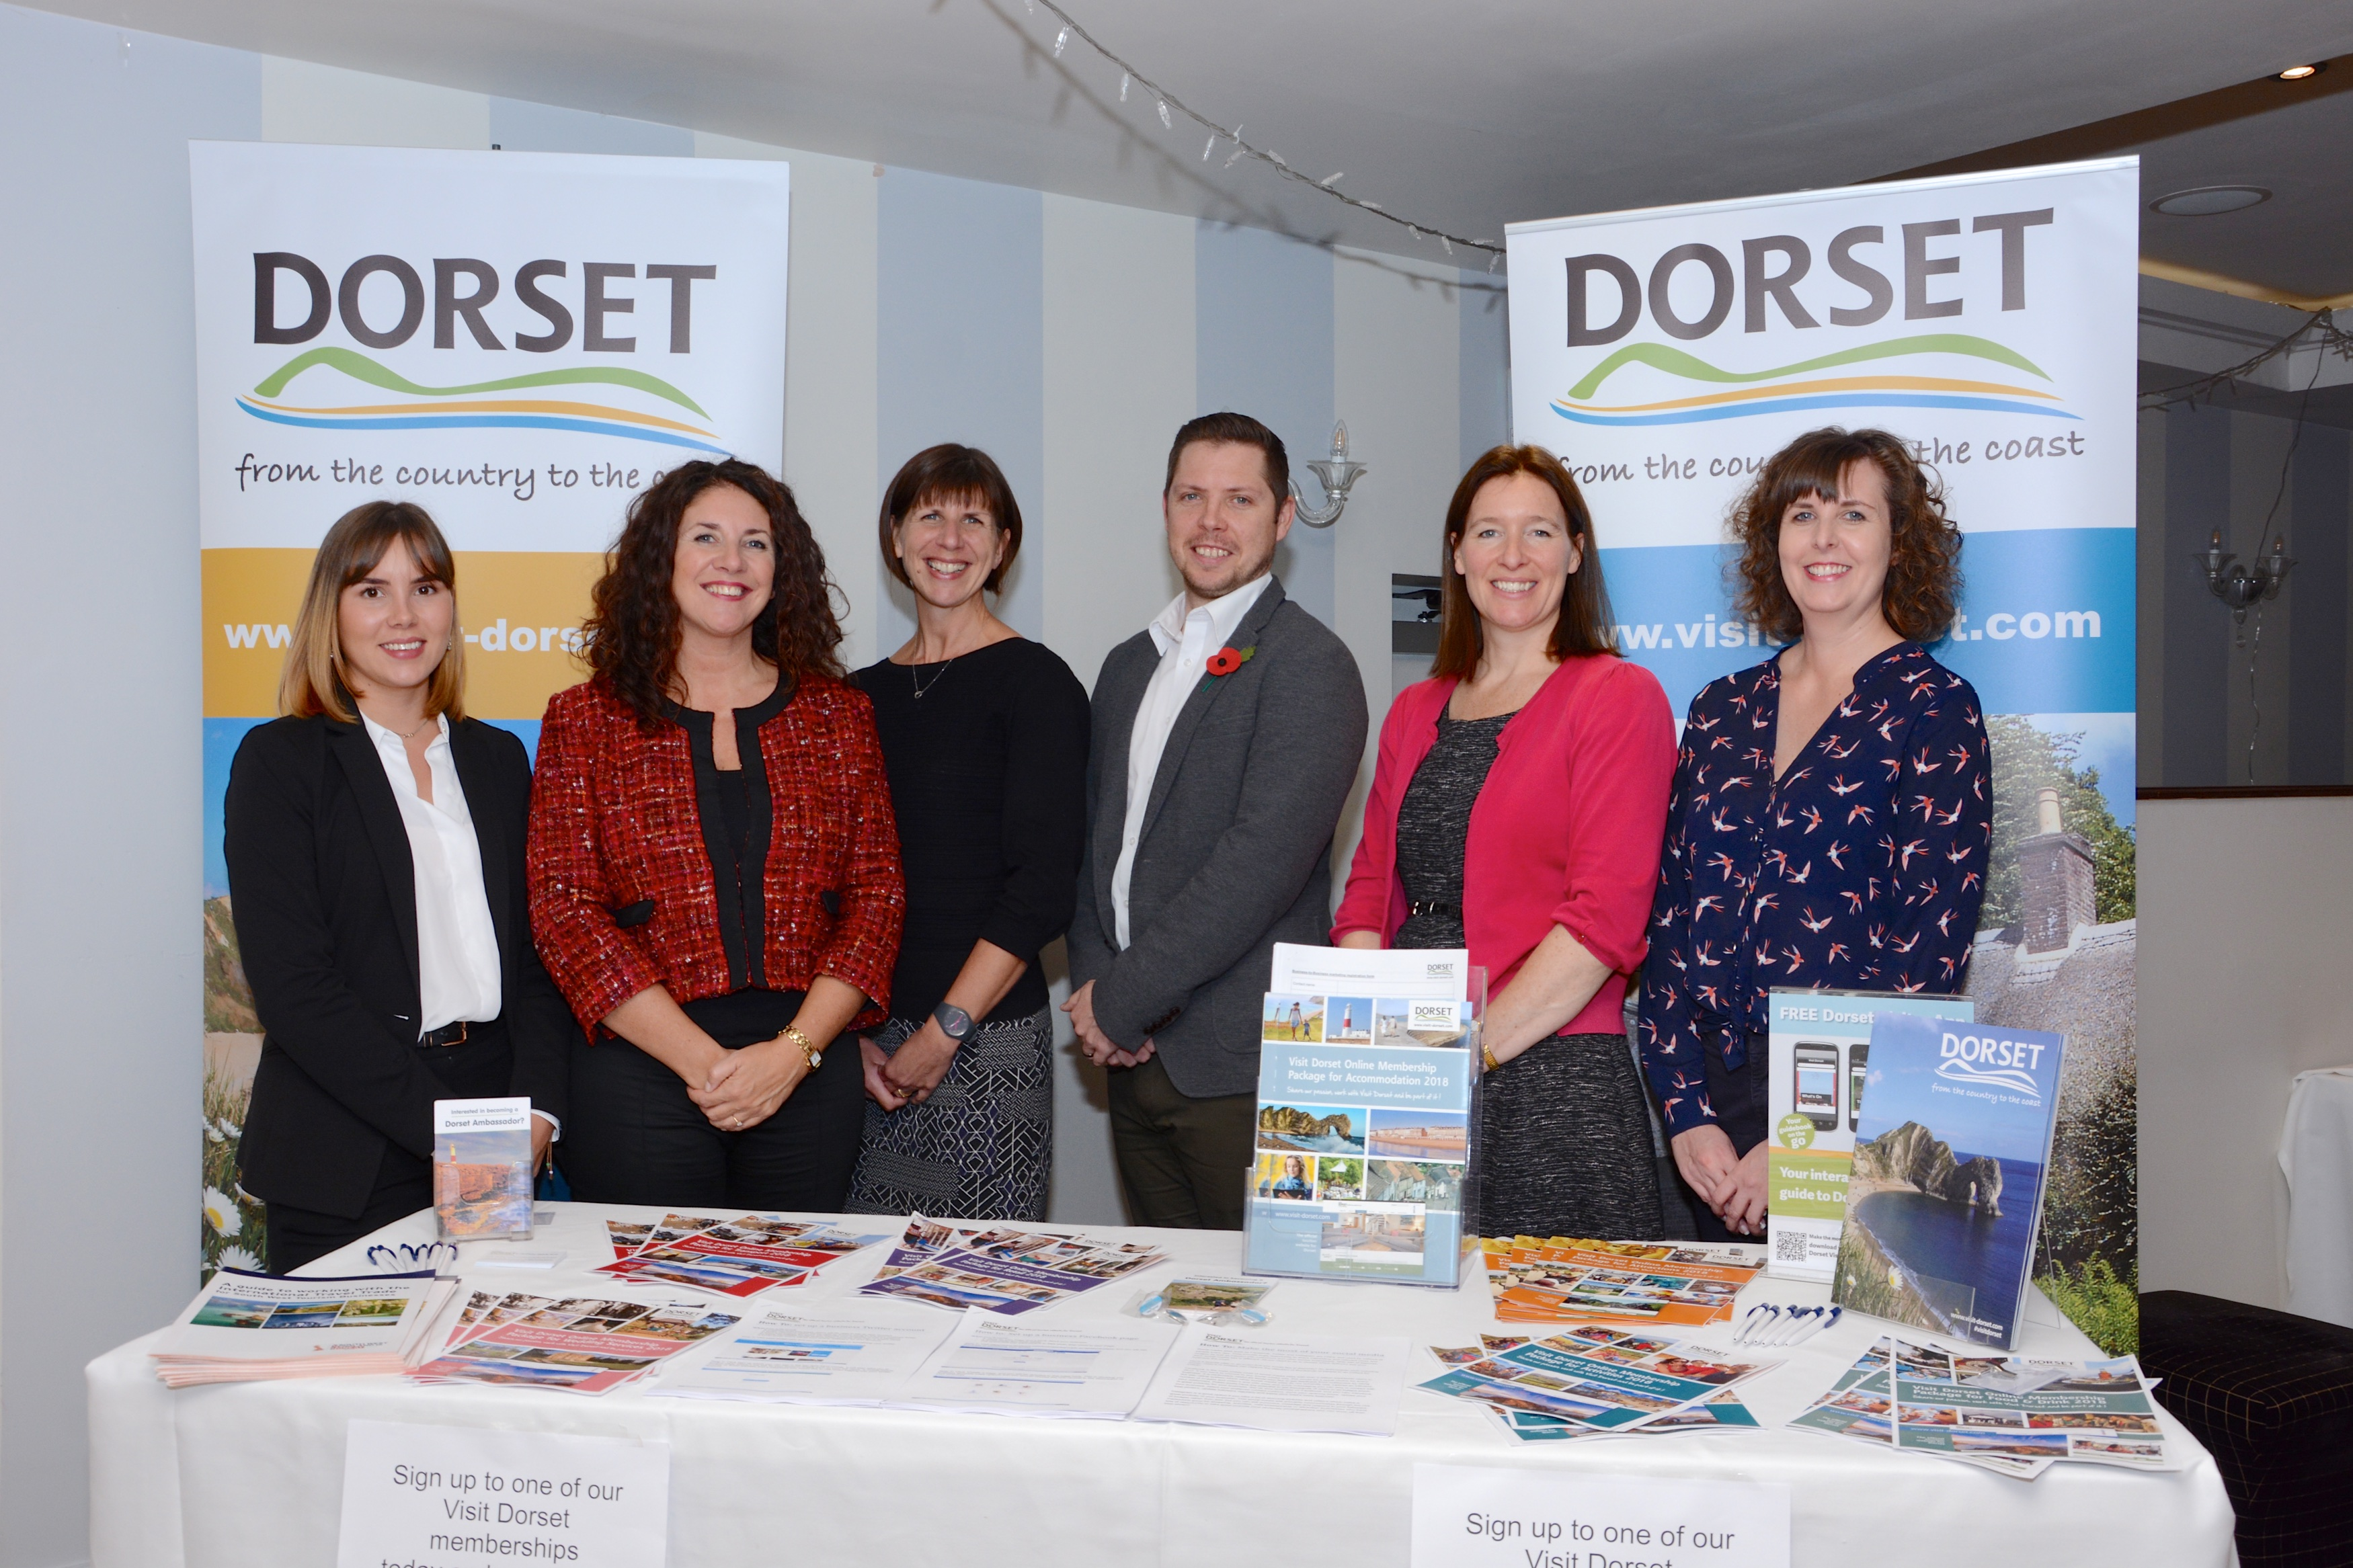 The Visit Dorset team at the digital roadshow event at The Kings Arms in Christchurch